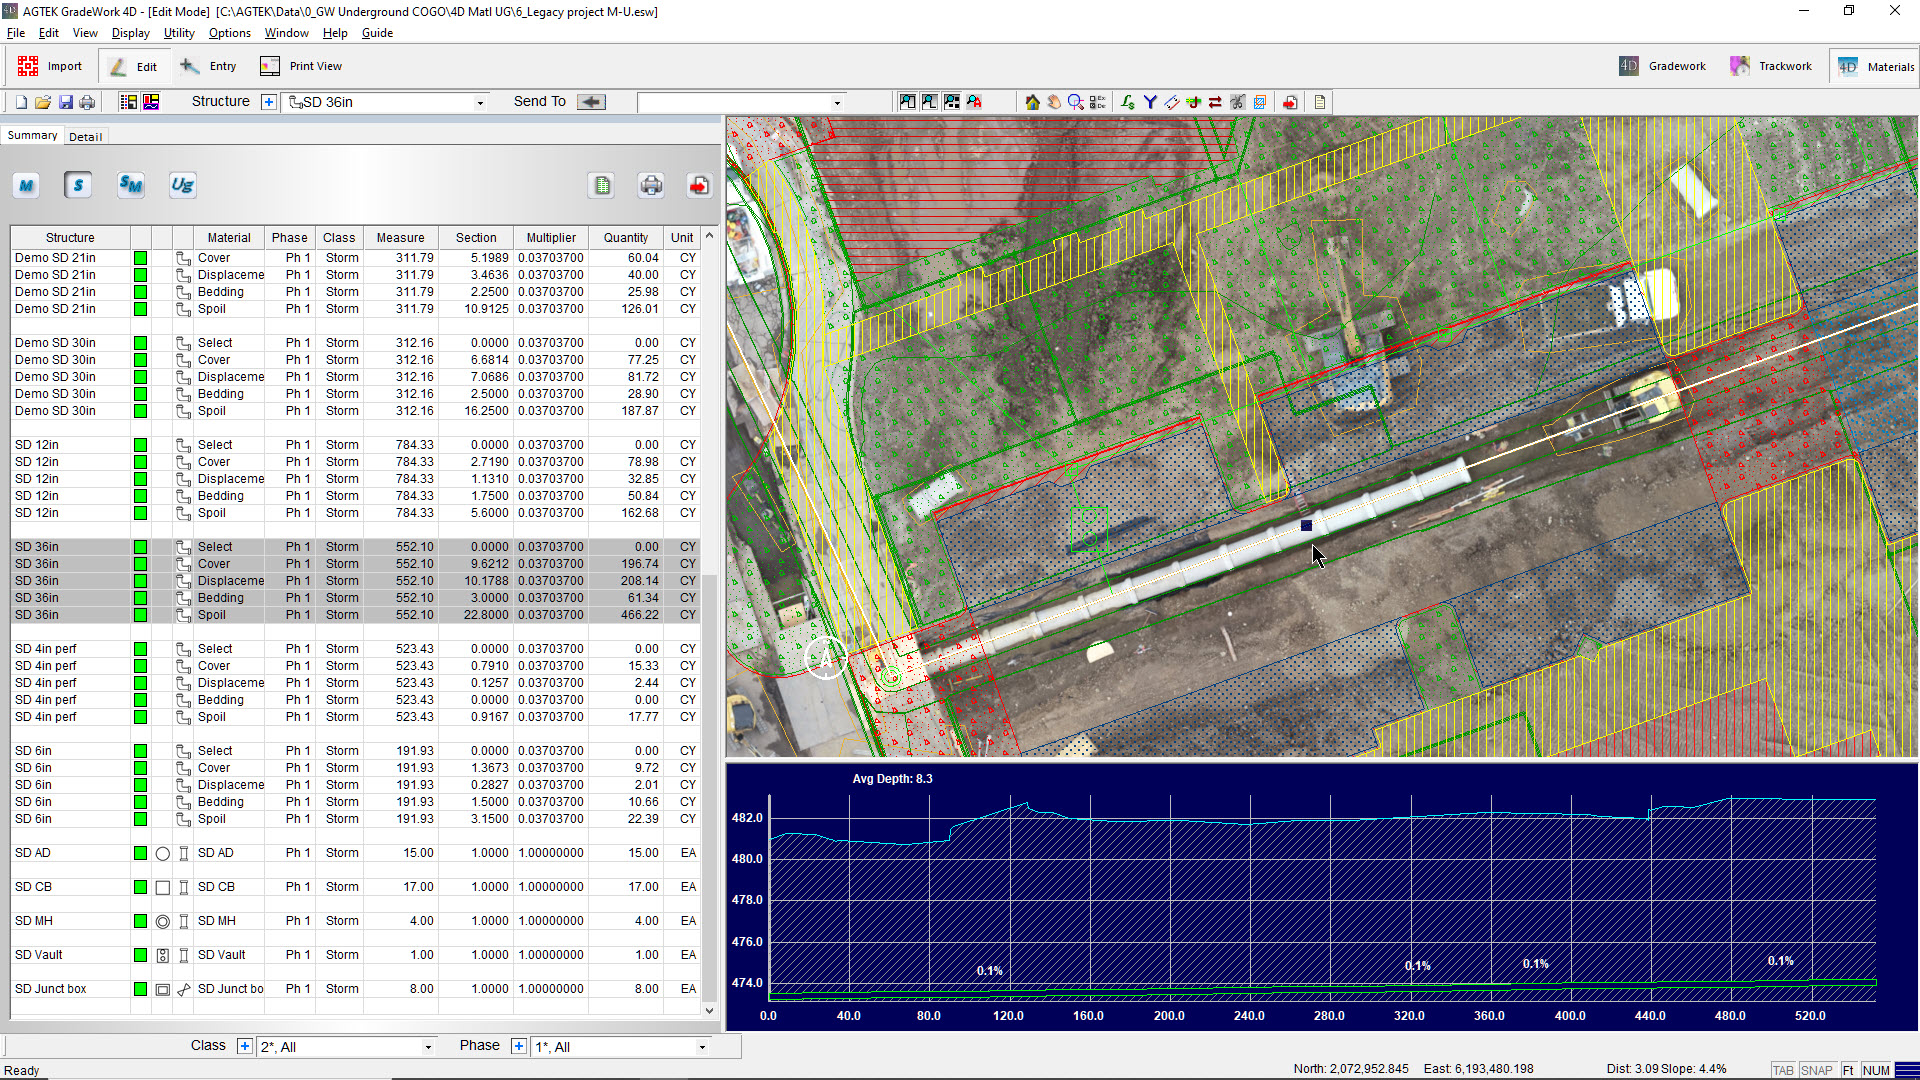 AGTEK has introduced Undergound, the next generation software to simplify takeoff and production control of pipe and underground utilities.